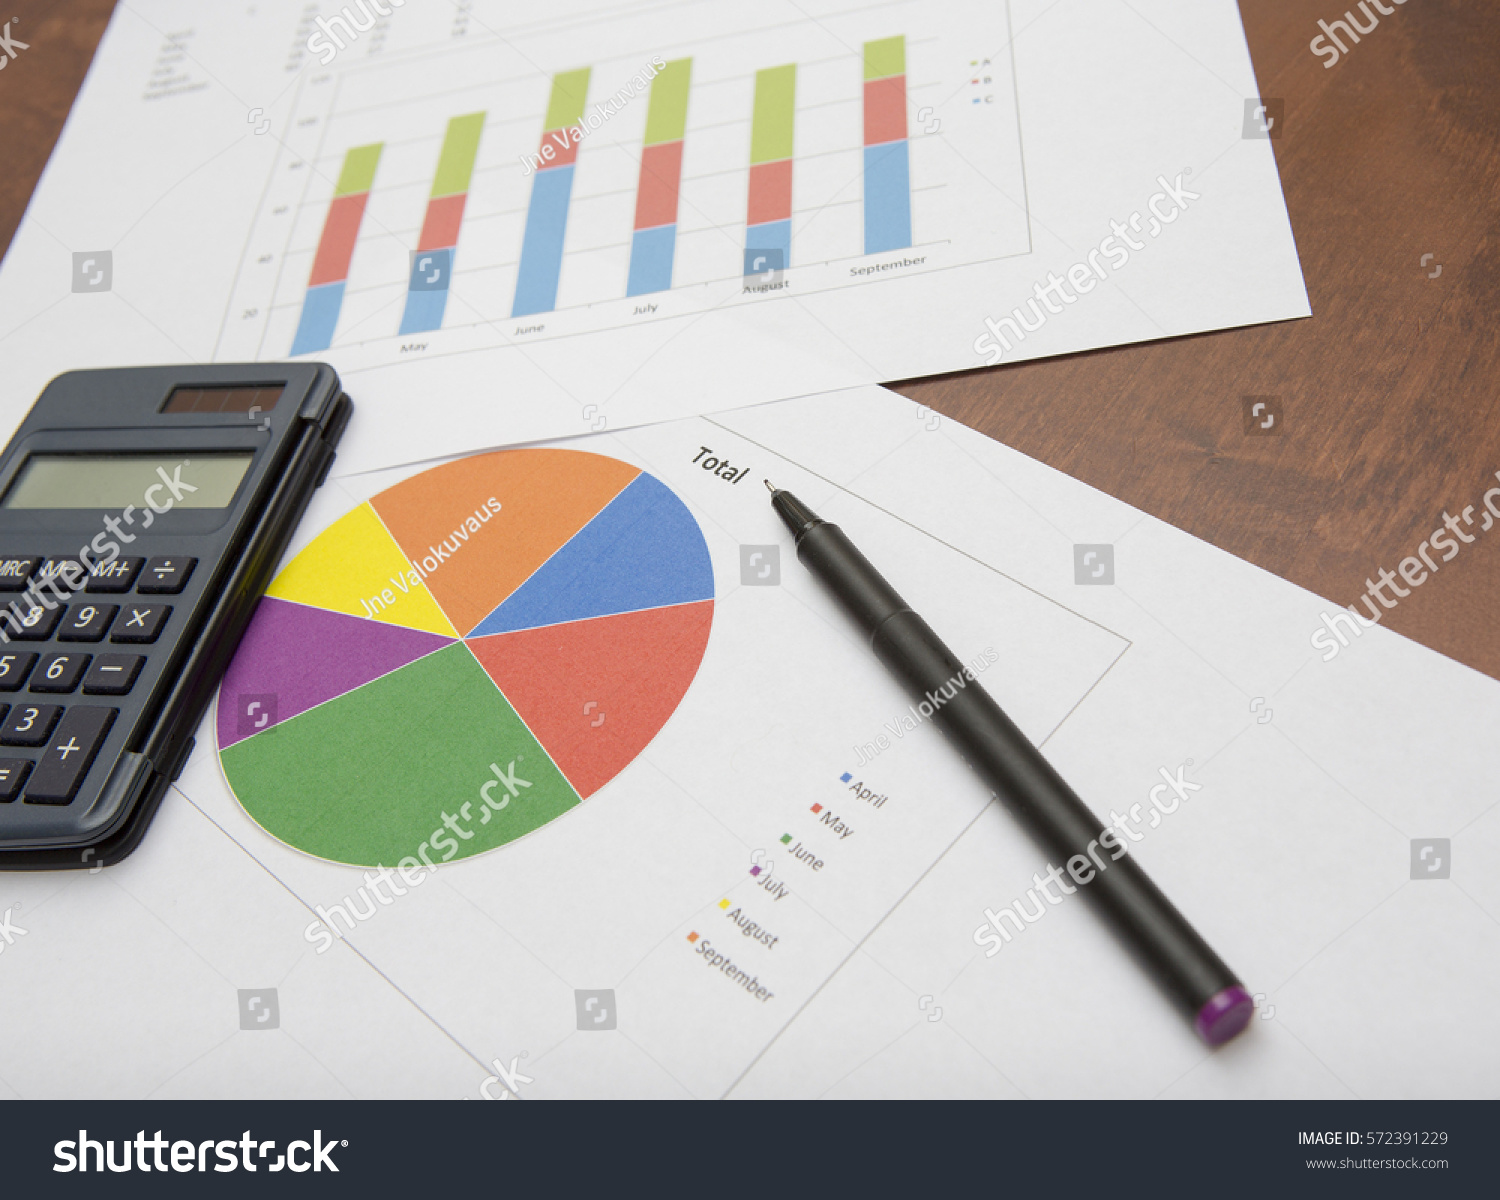 Business concept image pie chart bar stock photo royalty free business concept image pie chart bar stock photo royalty free 572391229 shutterstock ccuart Image collections